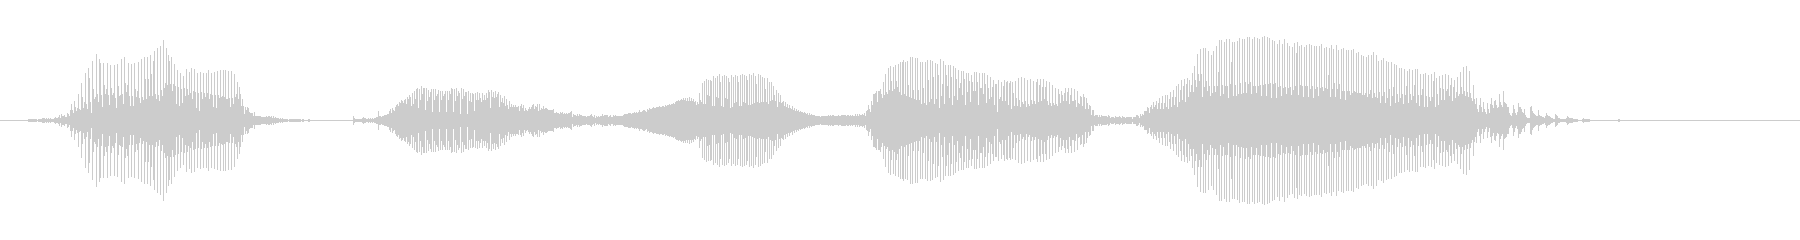 """6-year-old girl """"First Sunrise""""-01's unreproduced waveform"""